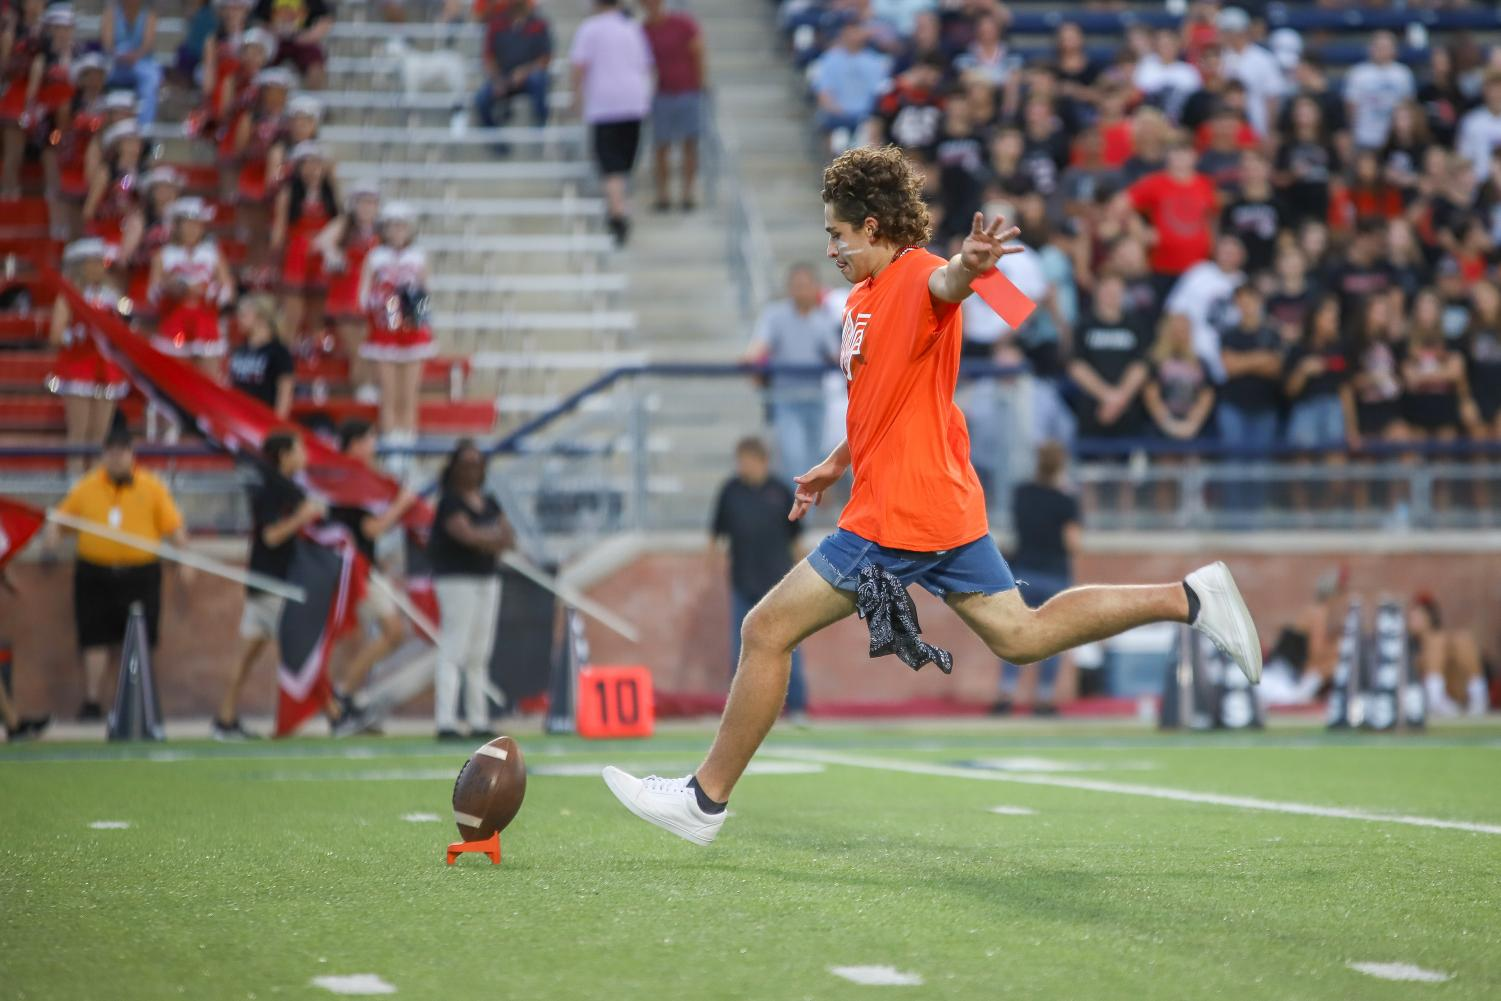 Senior+Matt+Piccirillo+chosen+to+compete+in+the+Whataburger+punt%2C+pass%2C+and+kick+challenge.+Piccirillo+was+unable+to+make+the+field+goal+at+the+end+of+the+competition.